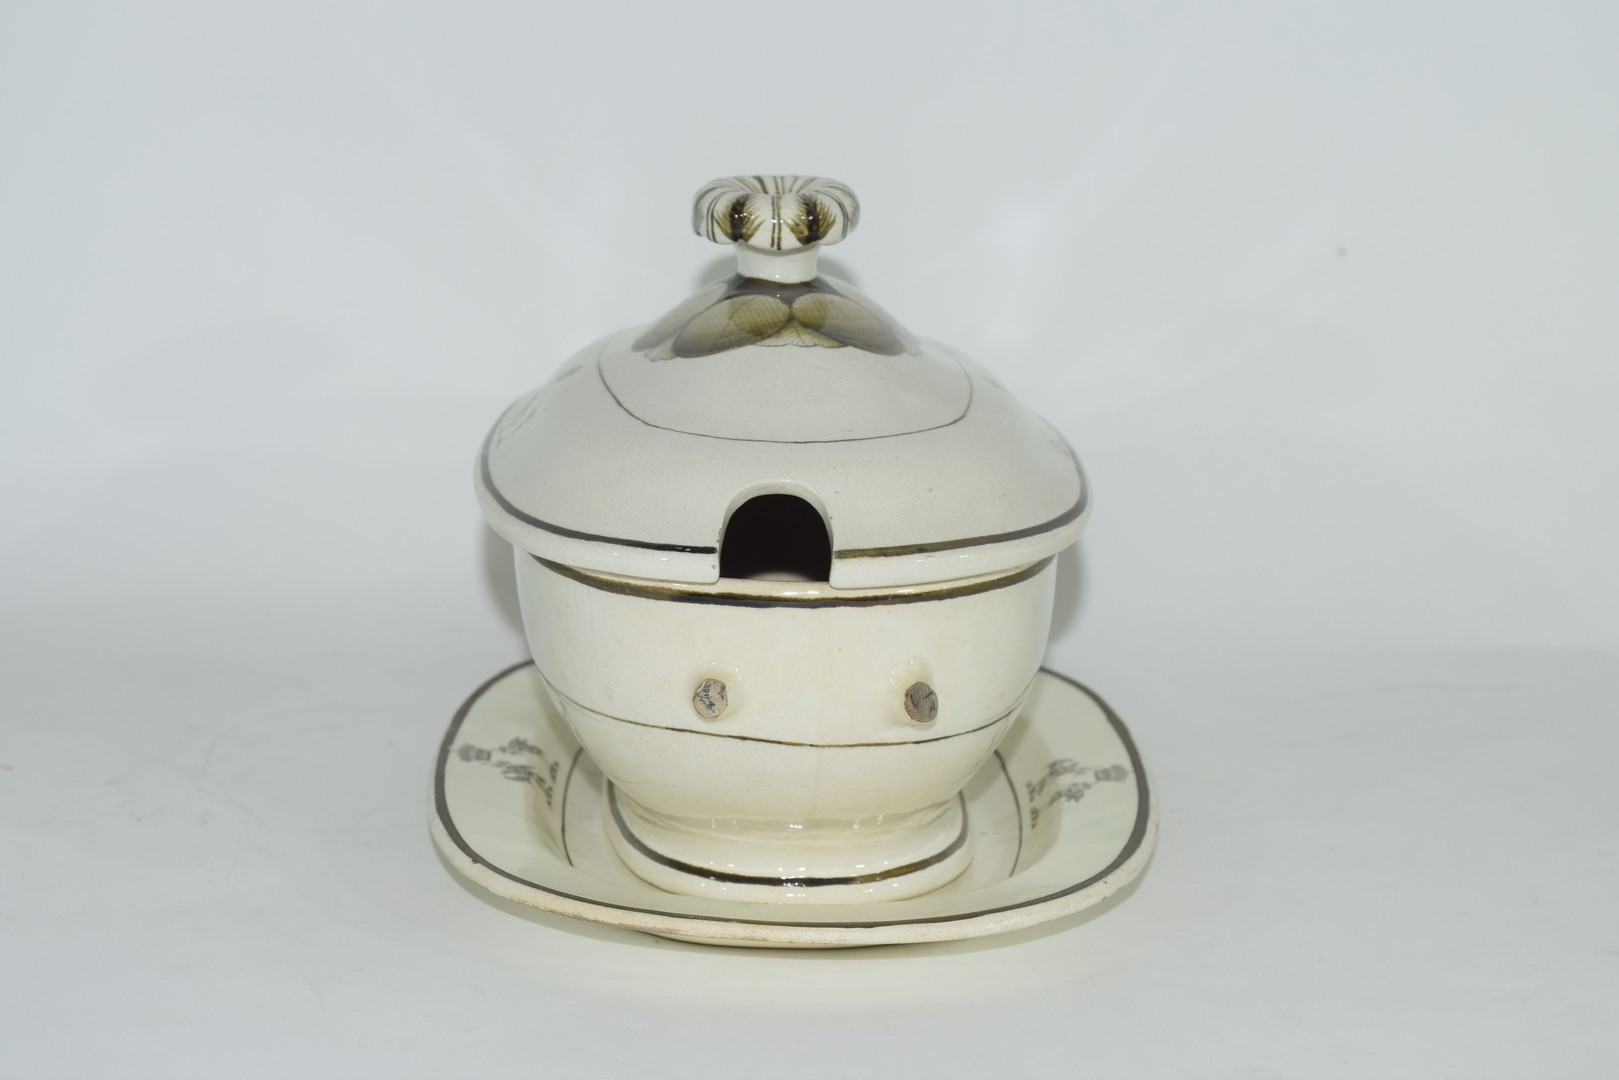 Late 18th century Rogers pearlware small tureen - Image 2 of 6